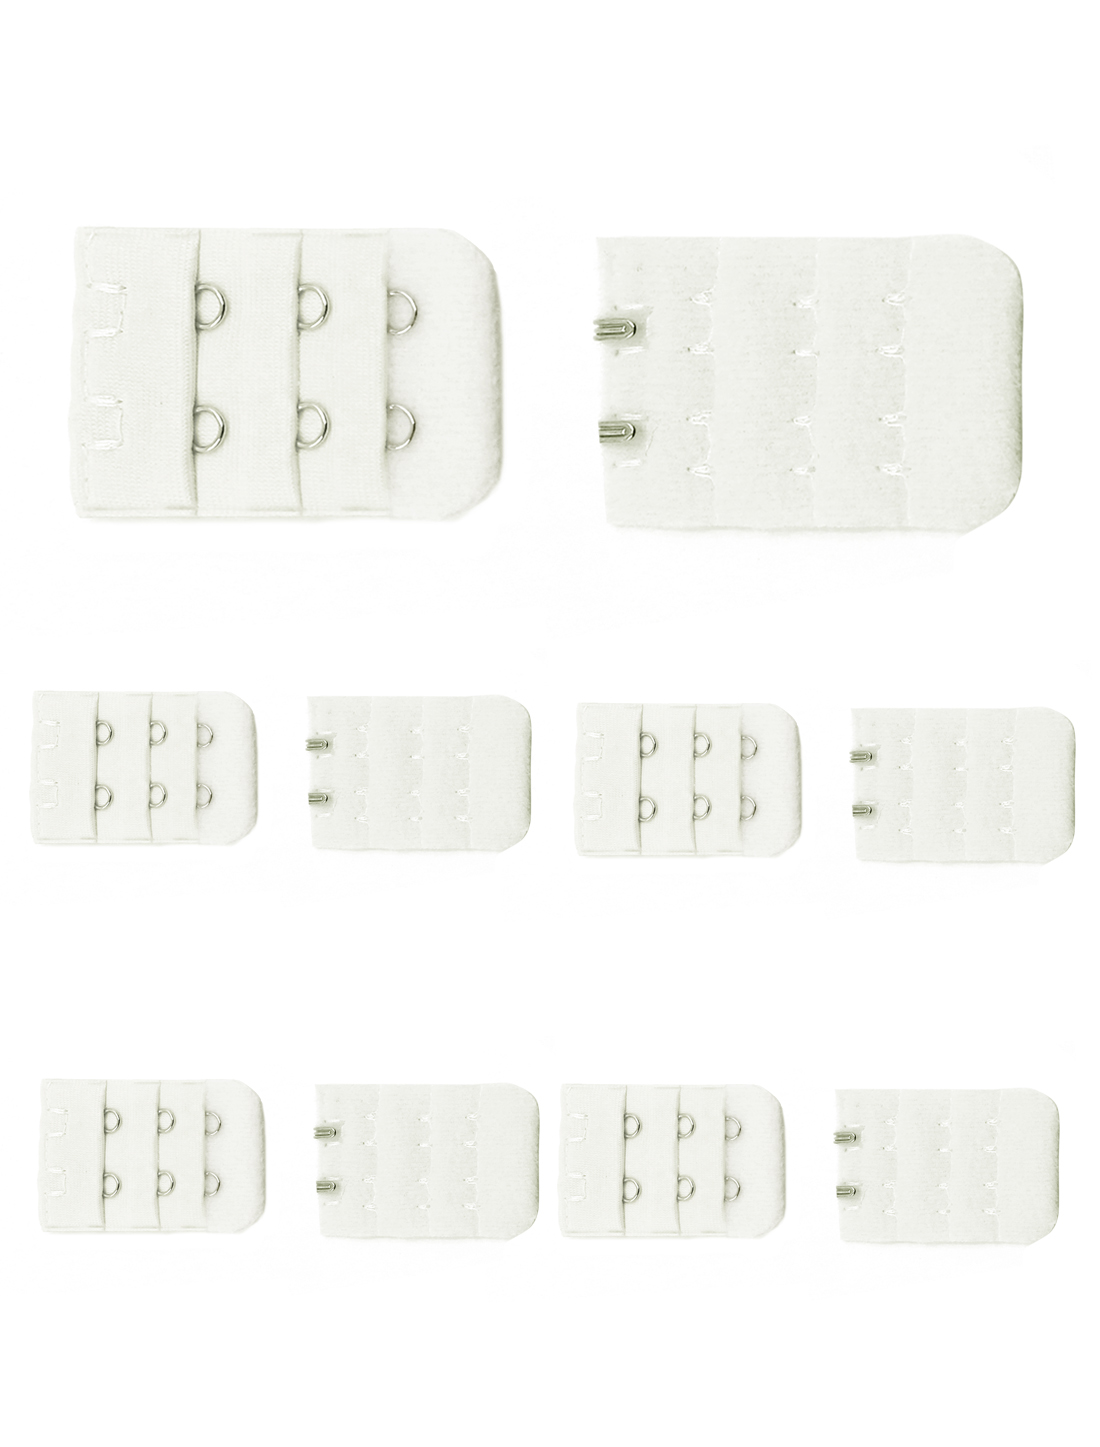 Women 3 Rows 2 Hooks Underwear Bra Extender Strap Adapter 10 Pcs White